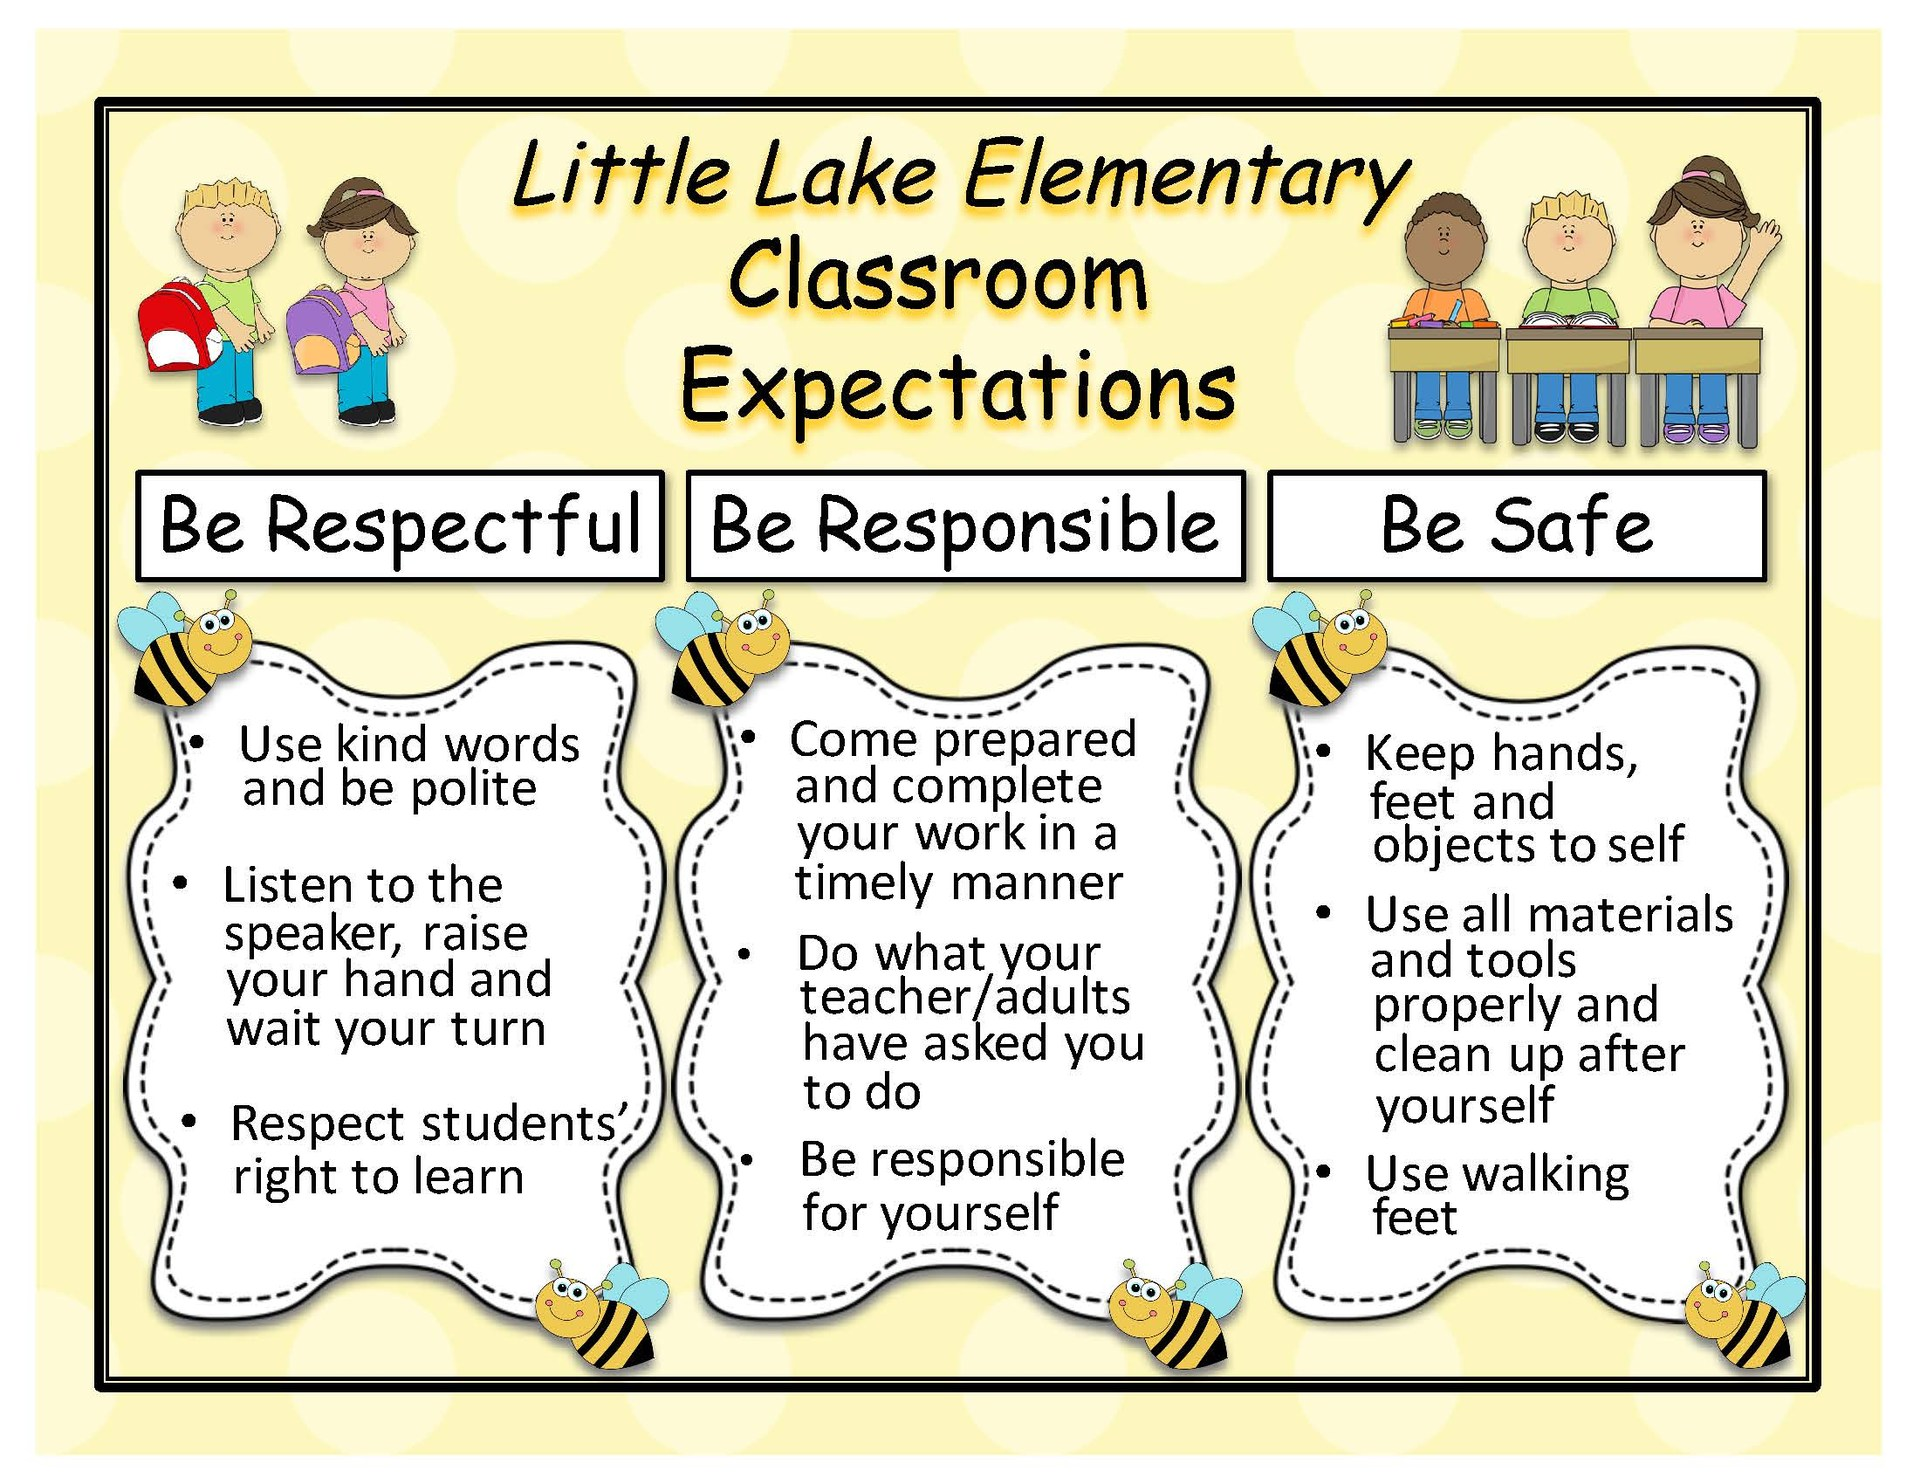 PBIS Behavioral expectations for students in the classroom.